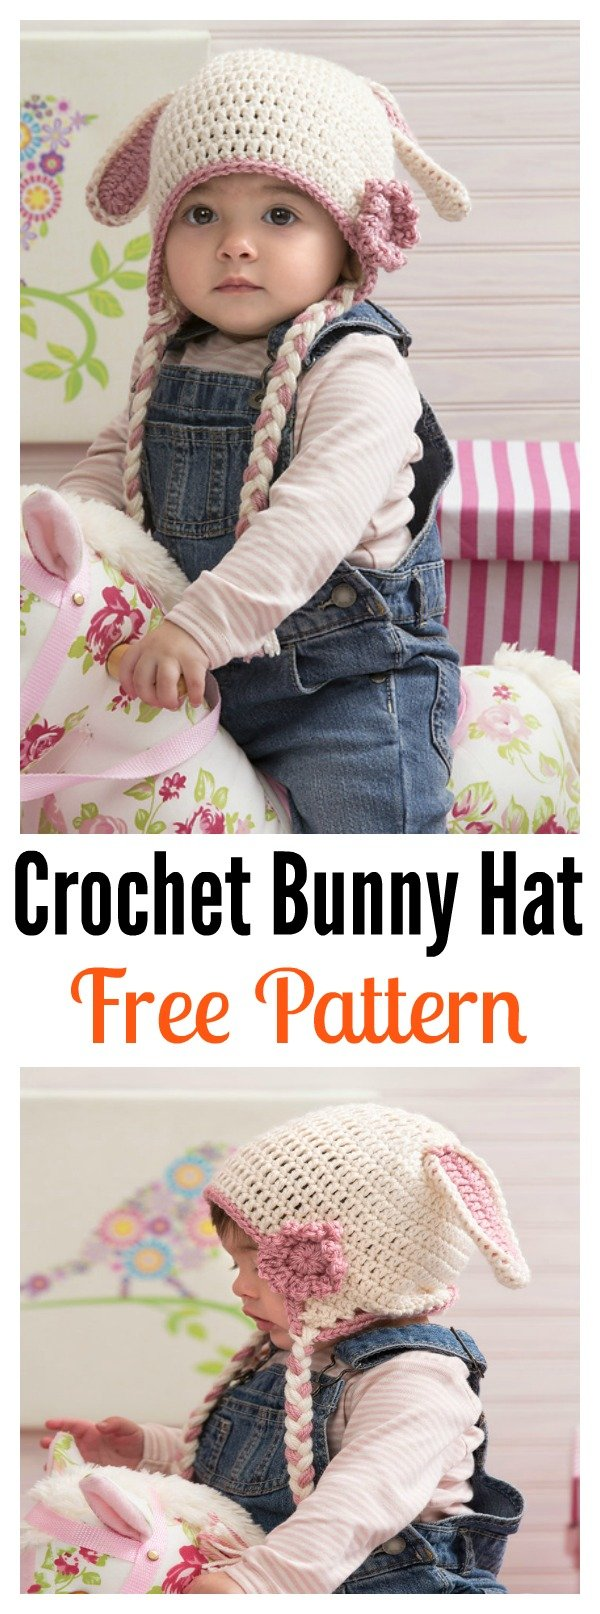 Crochet Sweet Bunny Hat Free Pattern